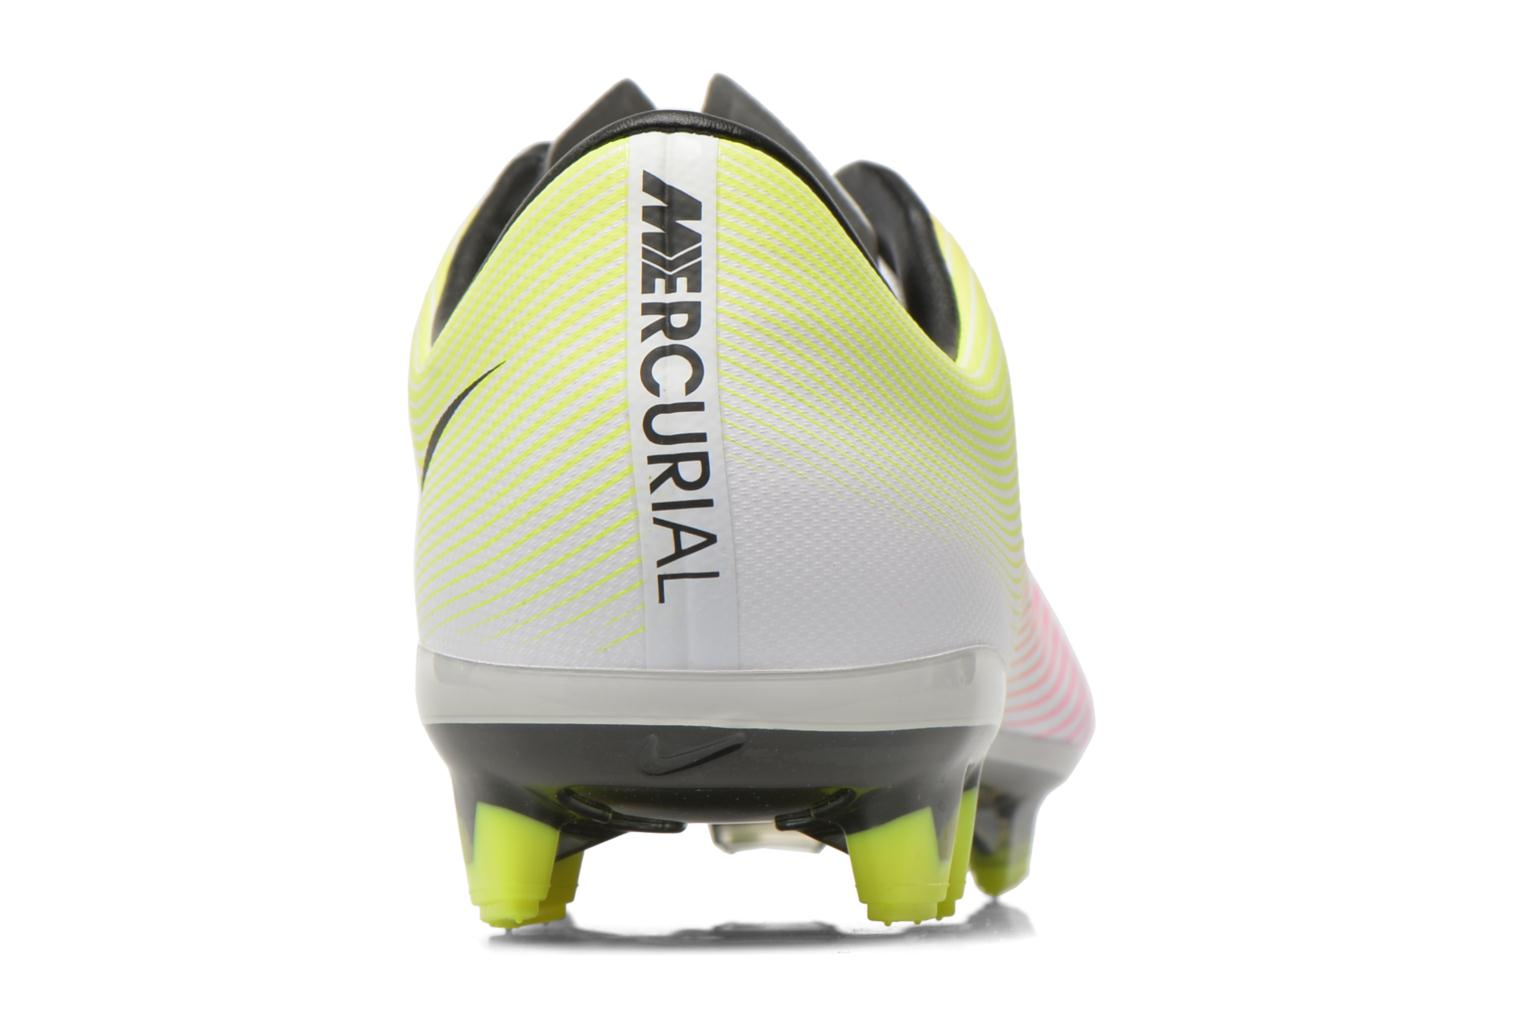 Mercurial Veloce II Fg White/Black-Volt-Total Orange